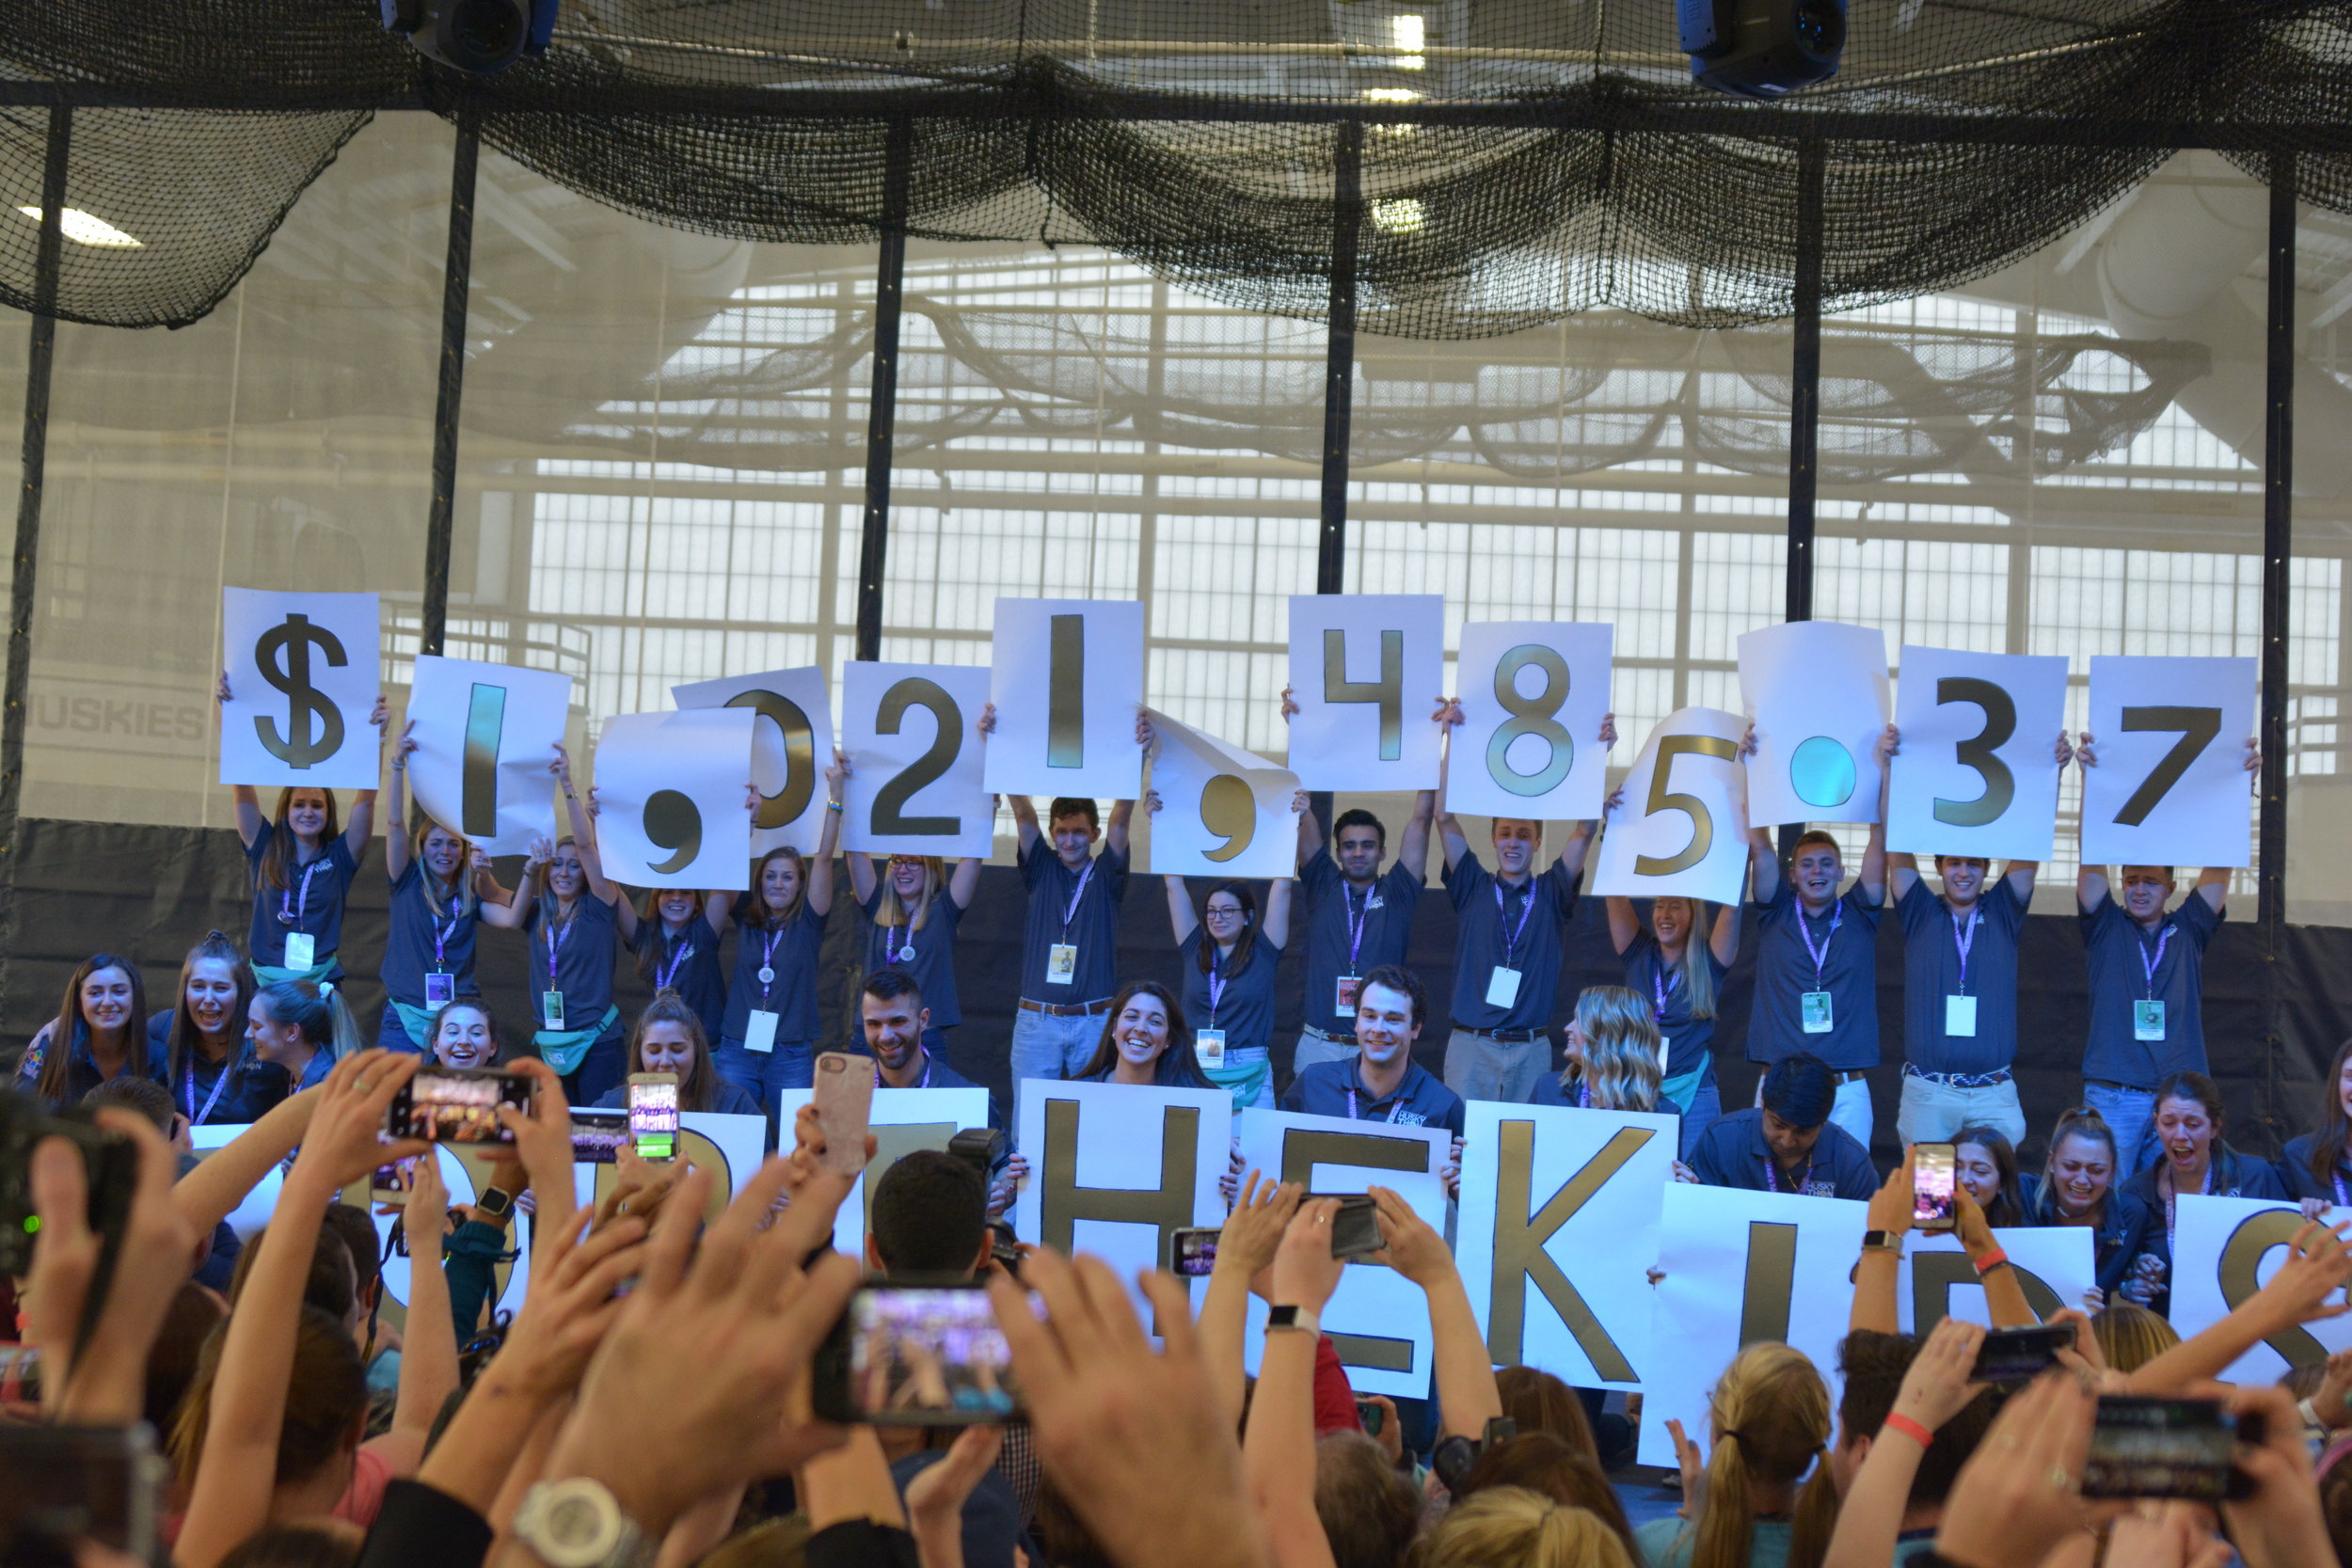 After working all year to fundraise, with a final push towards the end of the event, the grand total raised for 2018's HuskyTHON was $1,021,485.37. (Nicholas Hampton/The Daily Campus)